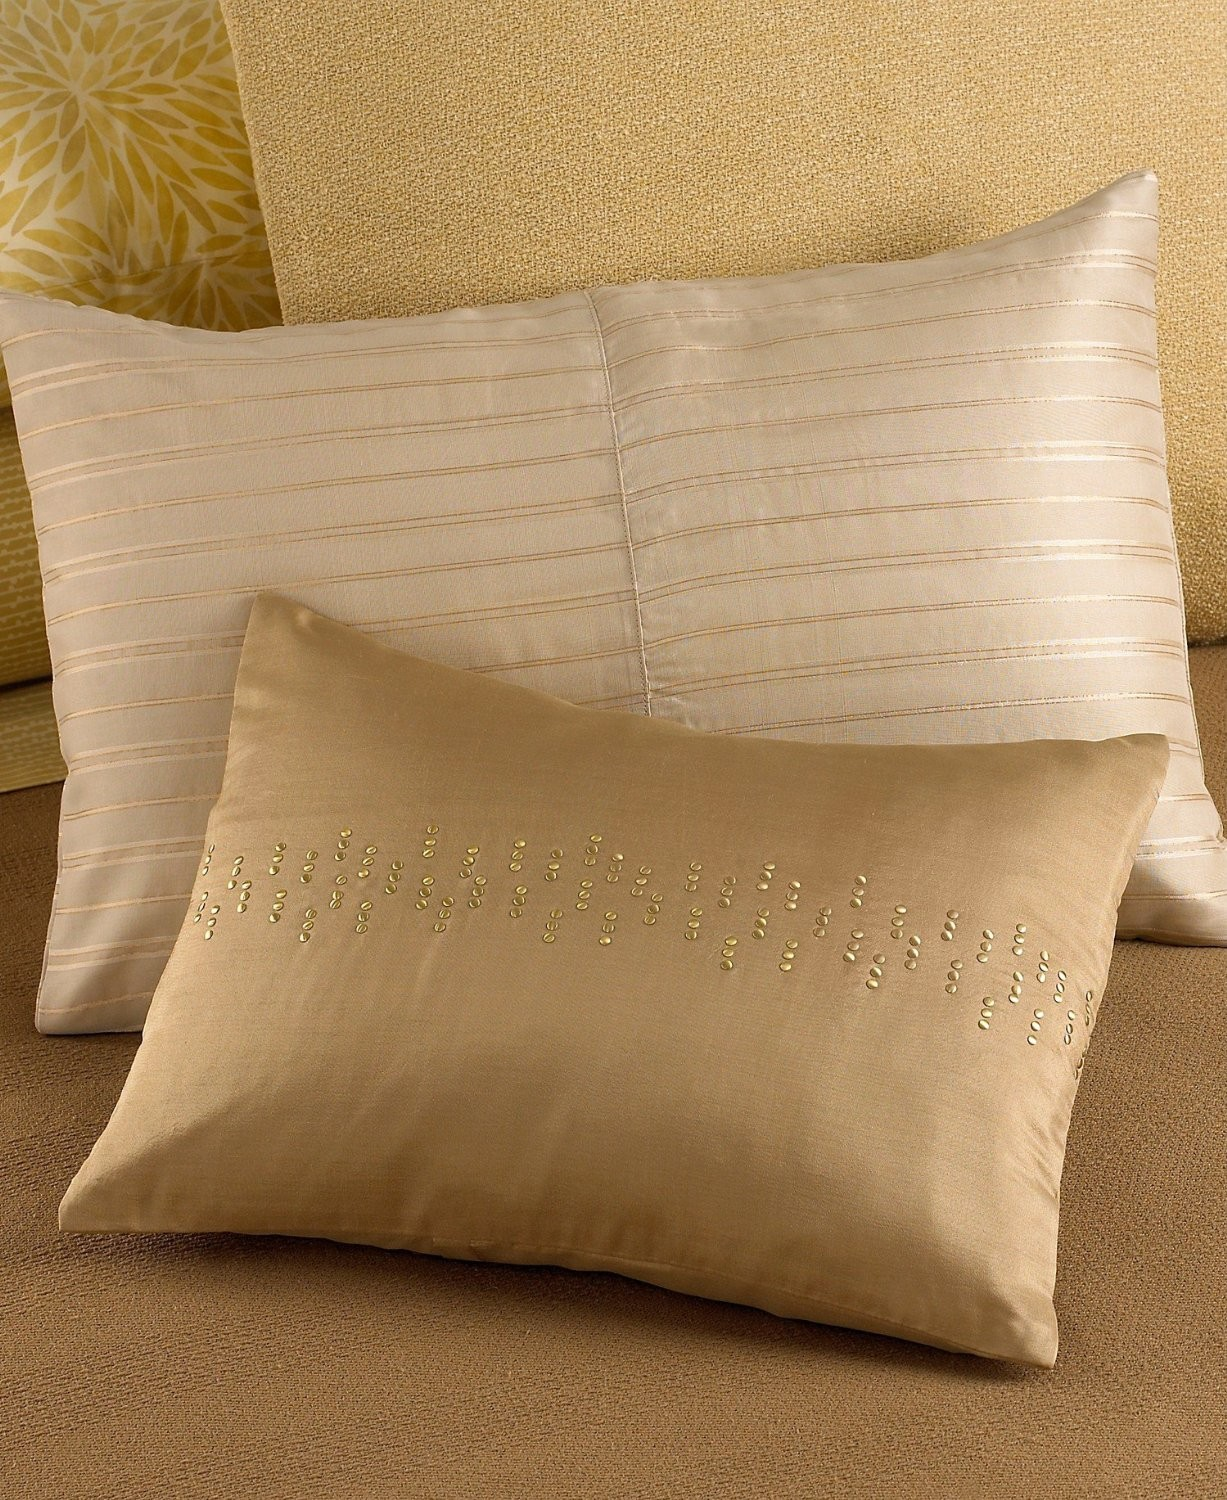 West Elm Pillows | Gold Throw Pillows | Mustard Throw Pillow